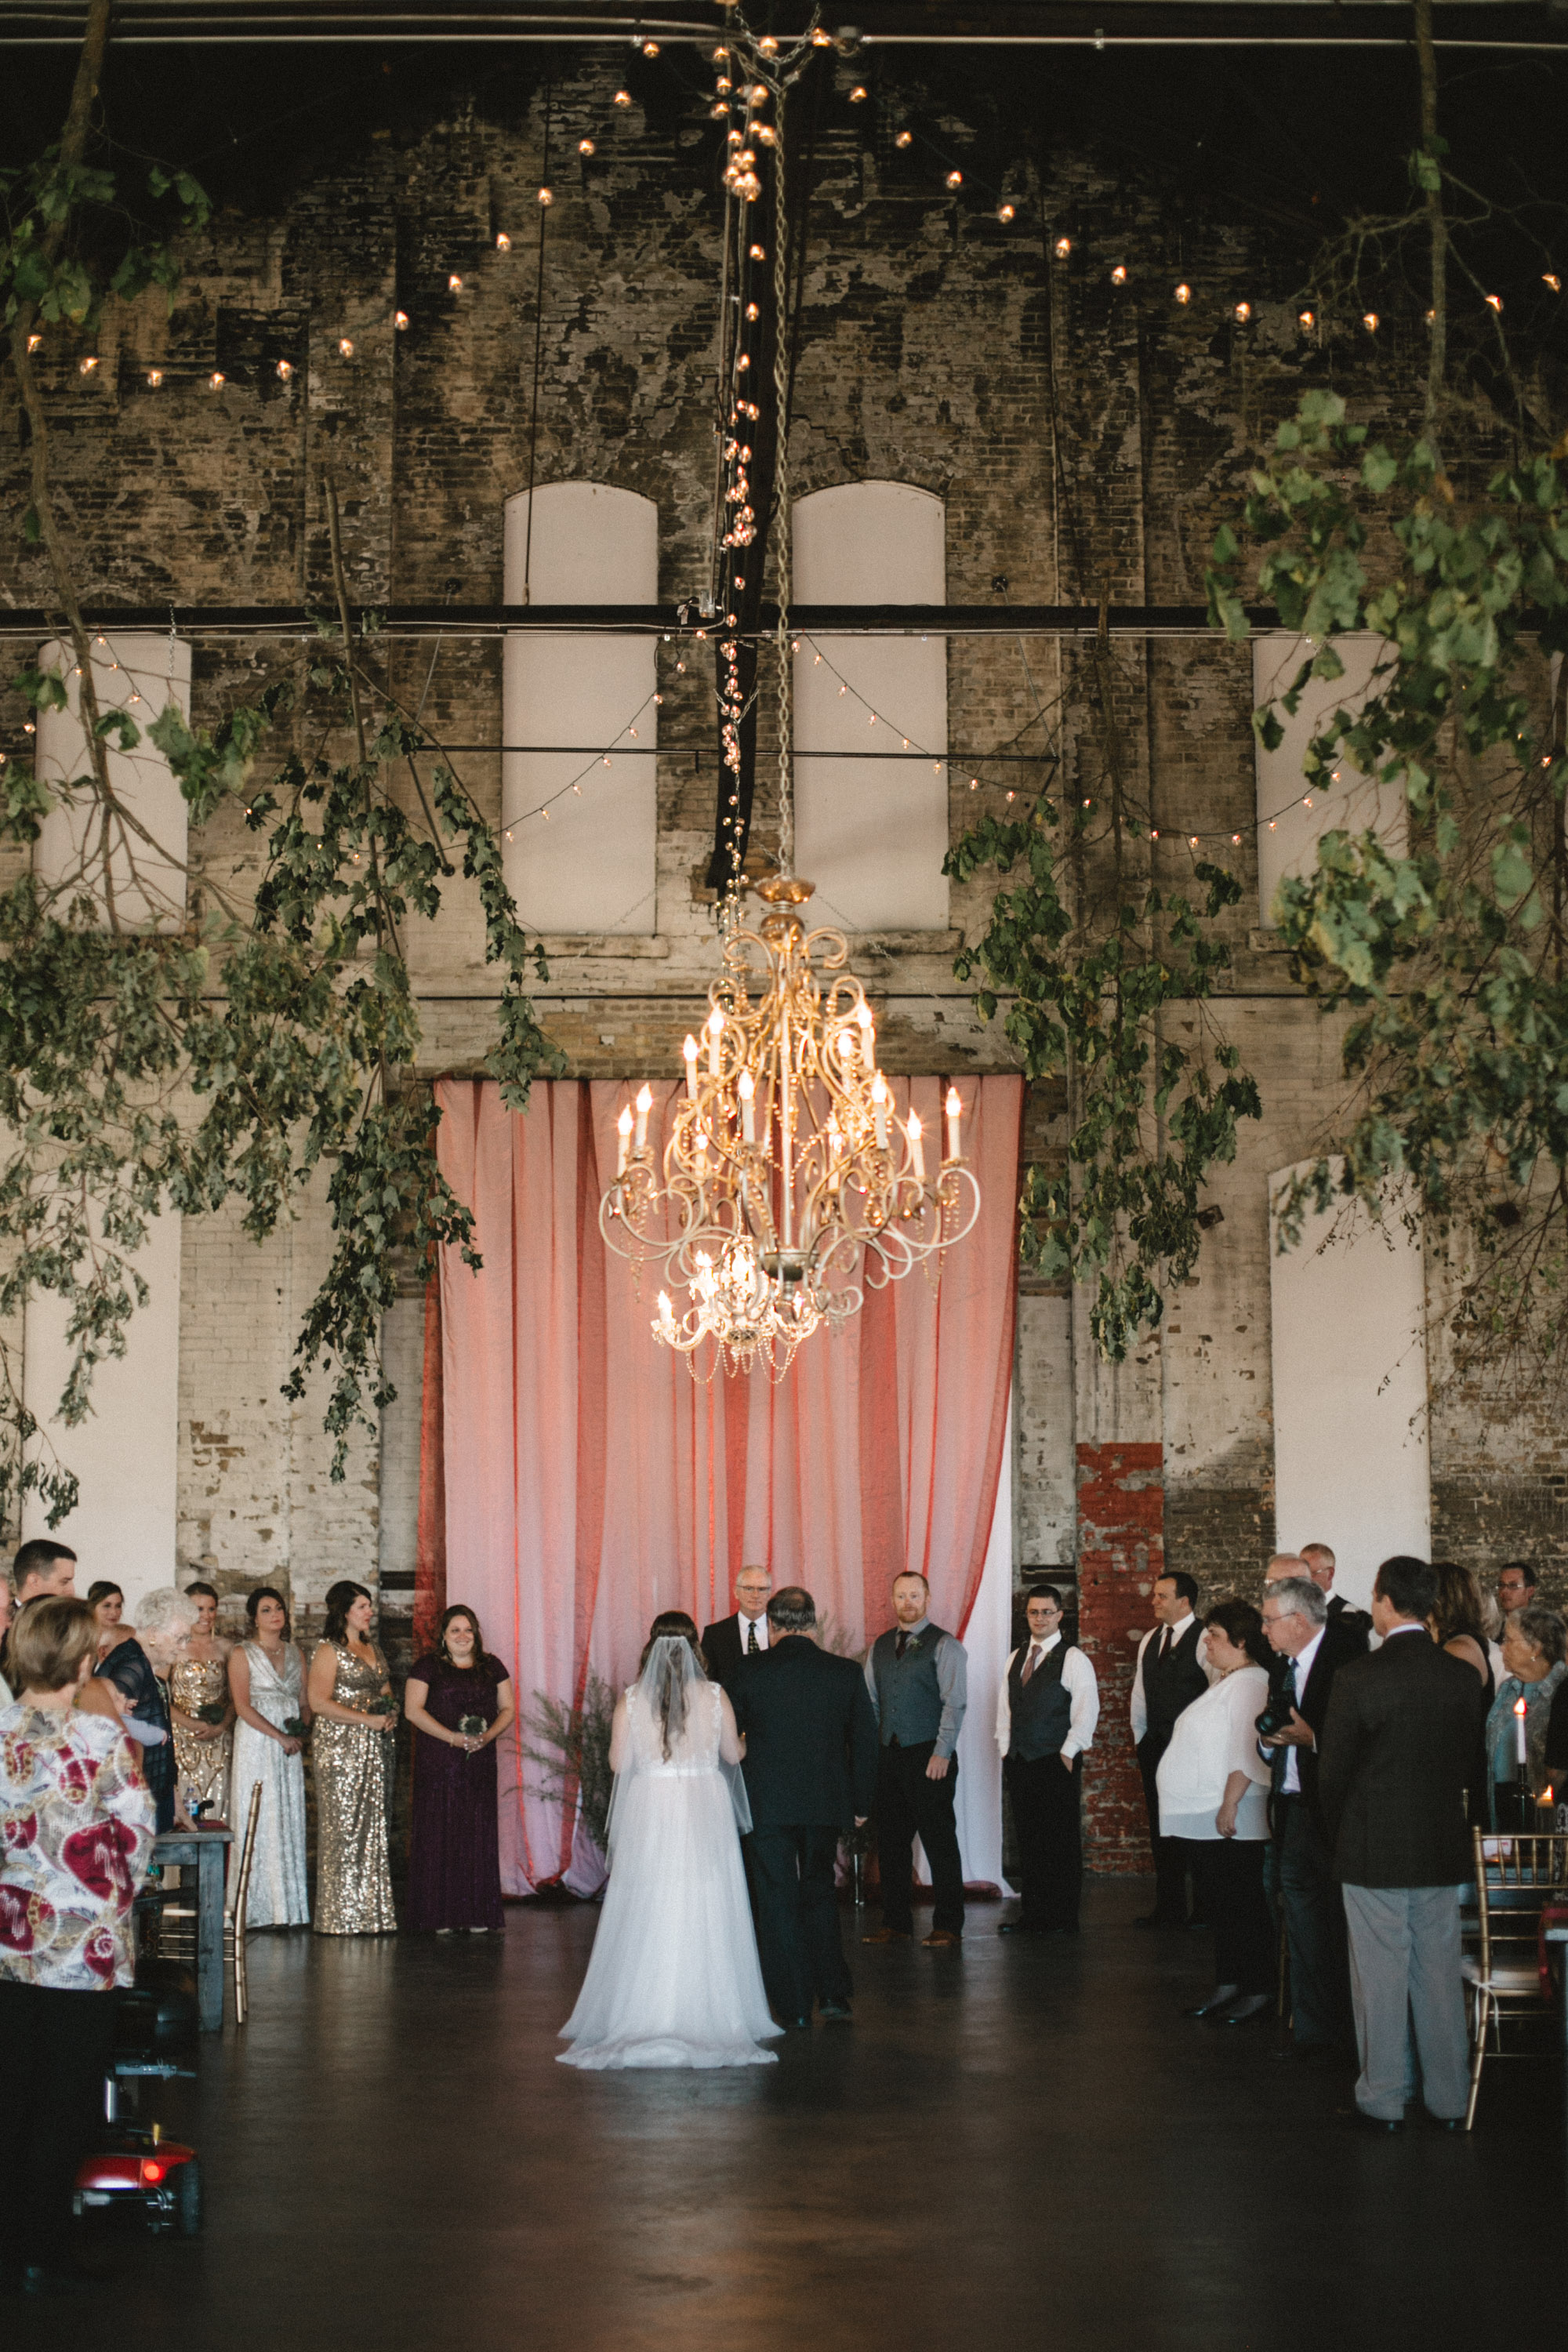 Enchanted forest wedding theme at the NP Event Space, photography by Britt DeZeeuw